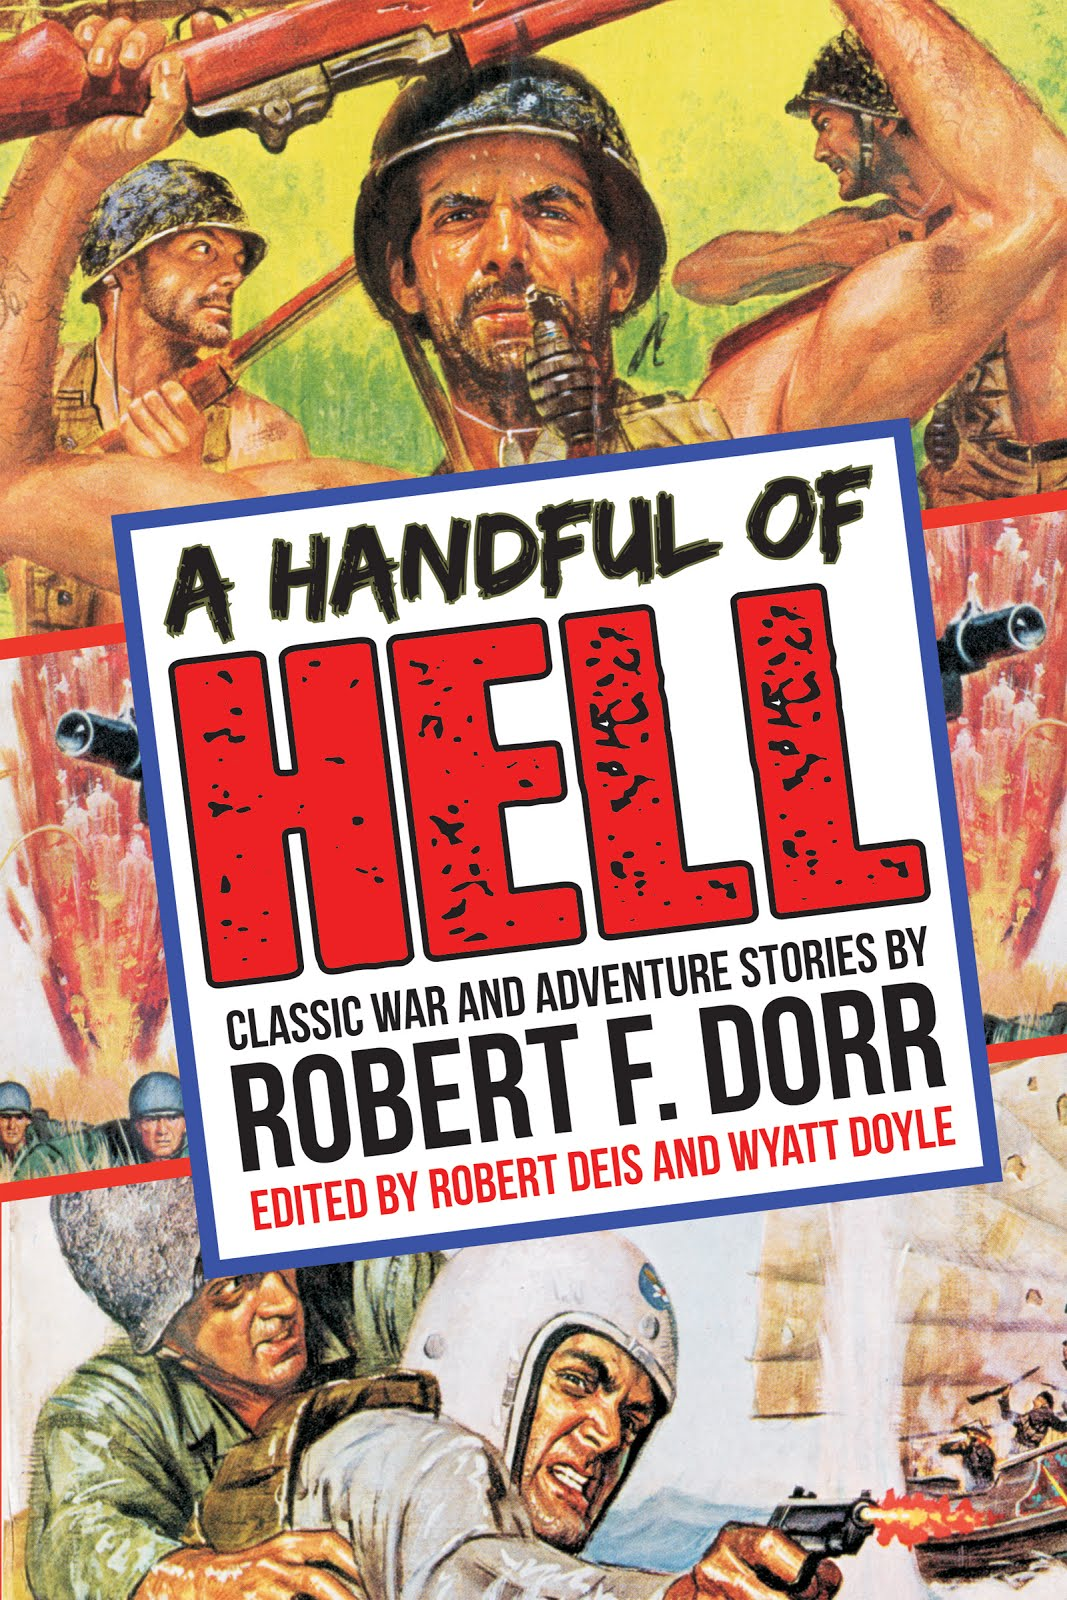 A HANDFUL OF HELL / Robert F. Dorr